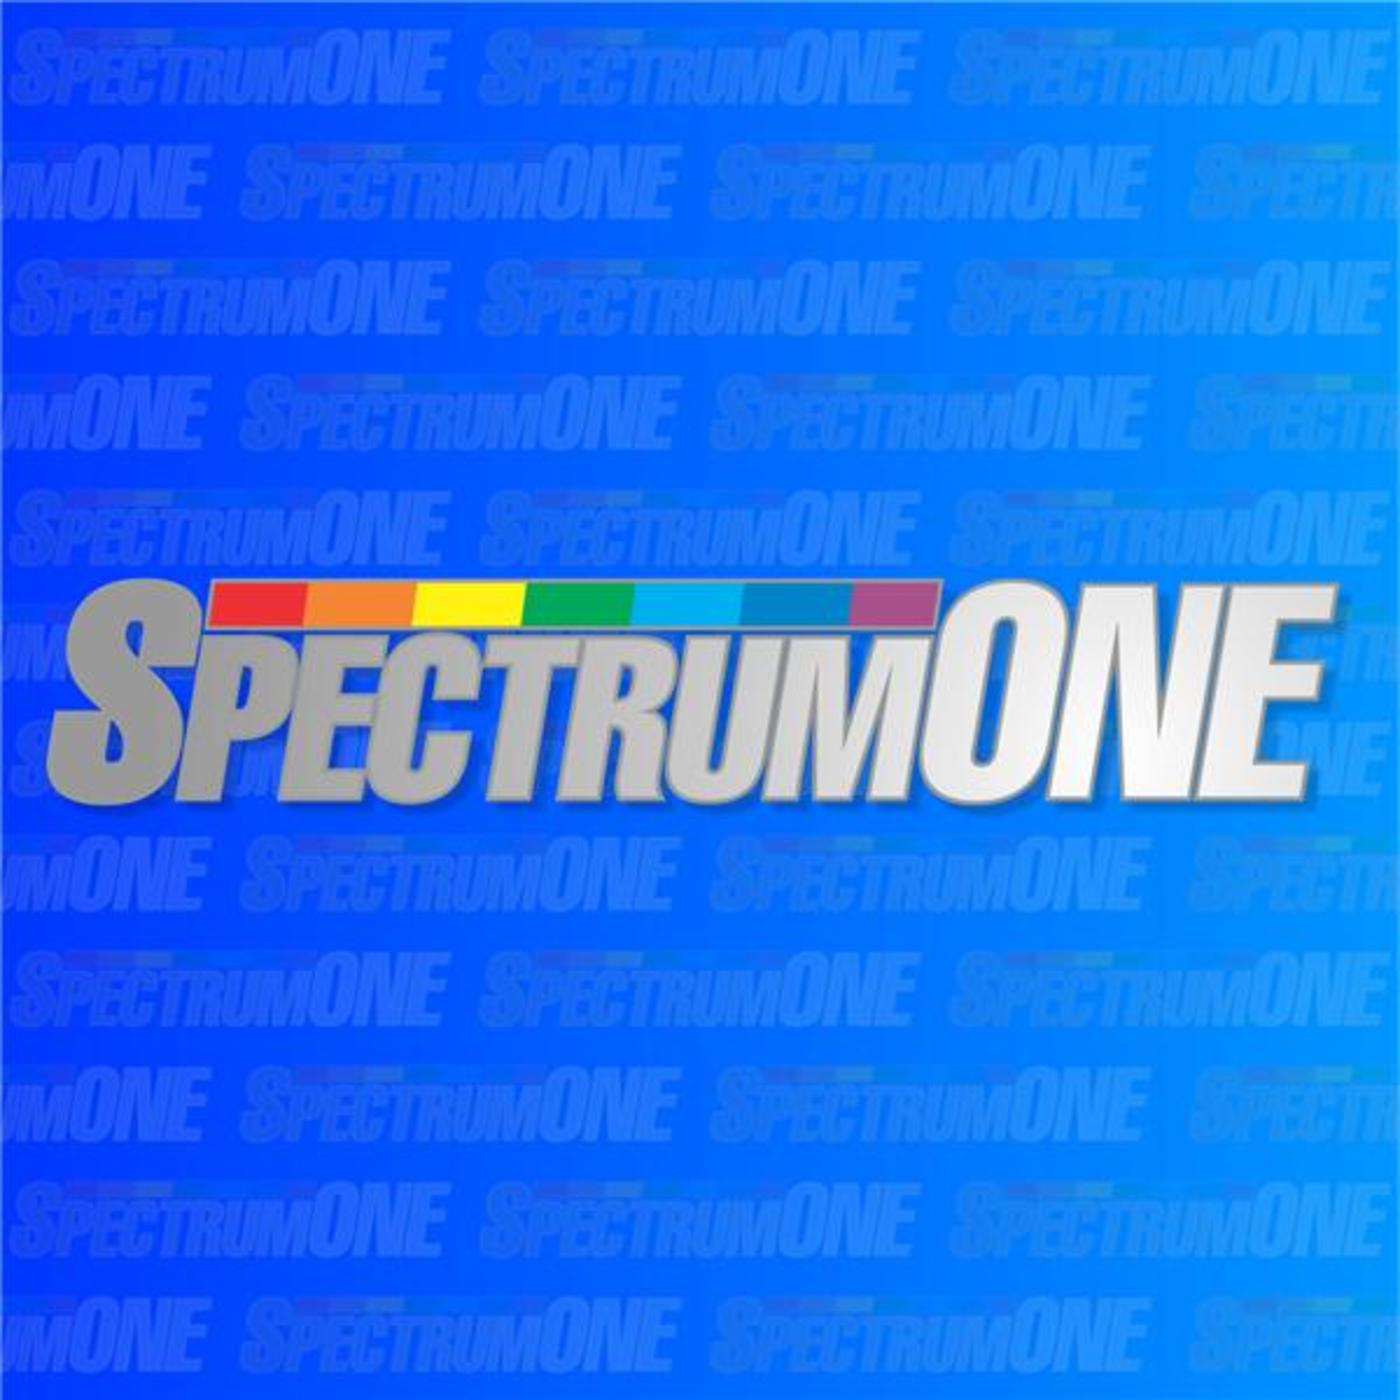 SpectrumOne Archives 2007-2012